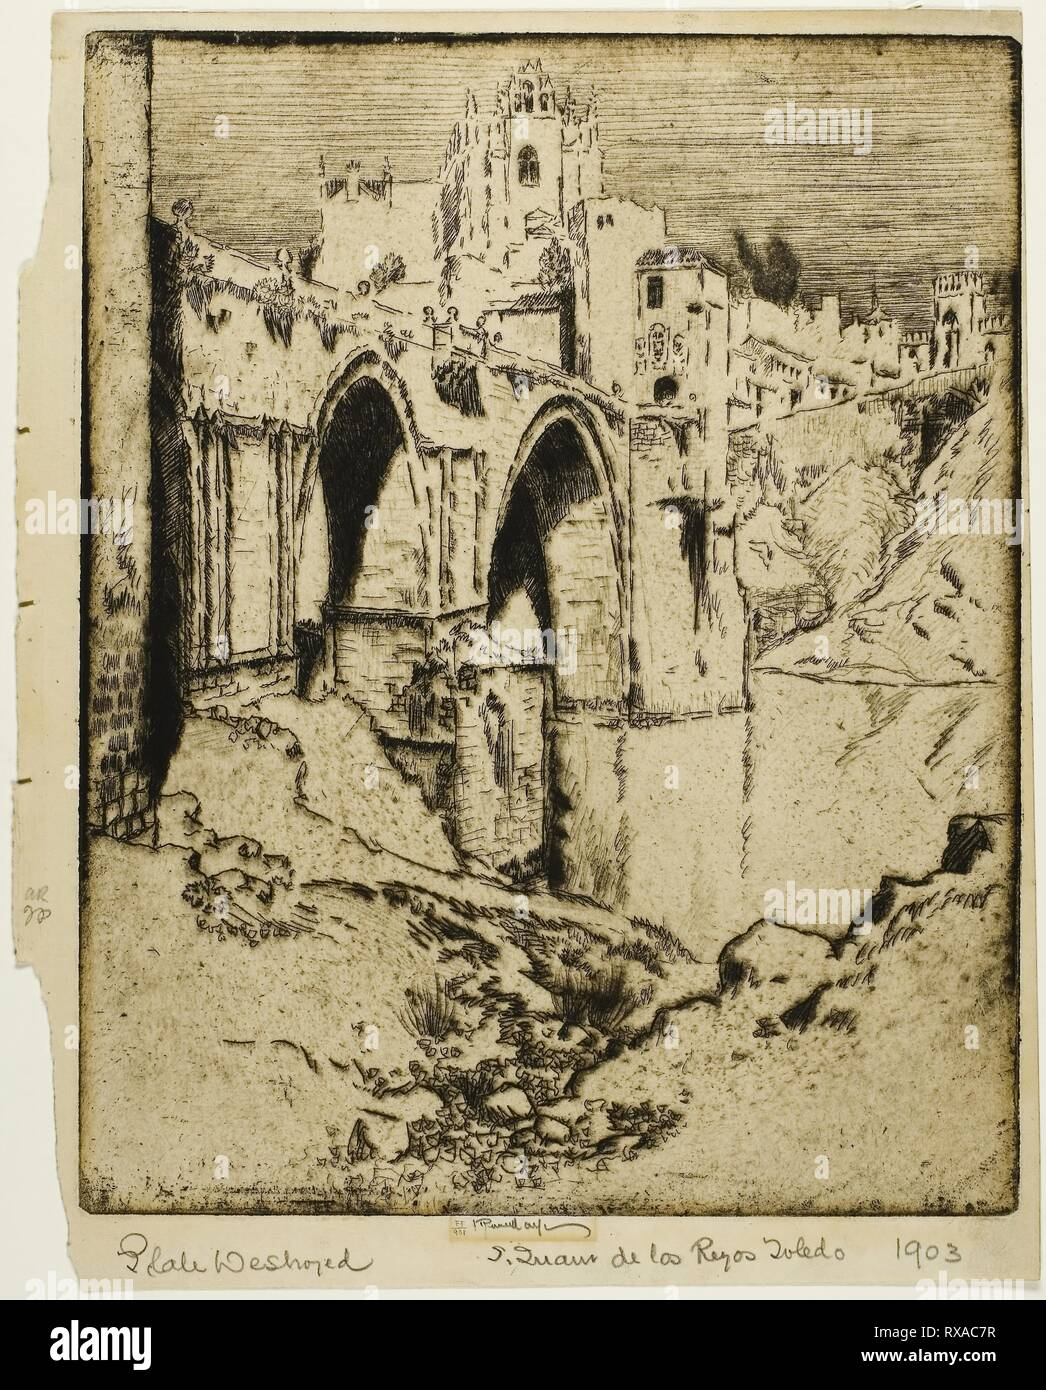 The Bridge of San Juan D'Los Reyos, Toldeo. Joseph Pennell; American, 1857-1926. Date: 1903-1904. Dimensions: 255 x 200 mm (plate); 274 x 210 mm (sheet). Etching on ivory wove paper. Origin: United States. Museum: The Chicago Art Institute. - Stock Image